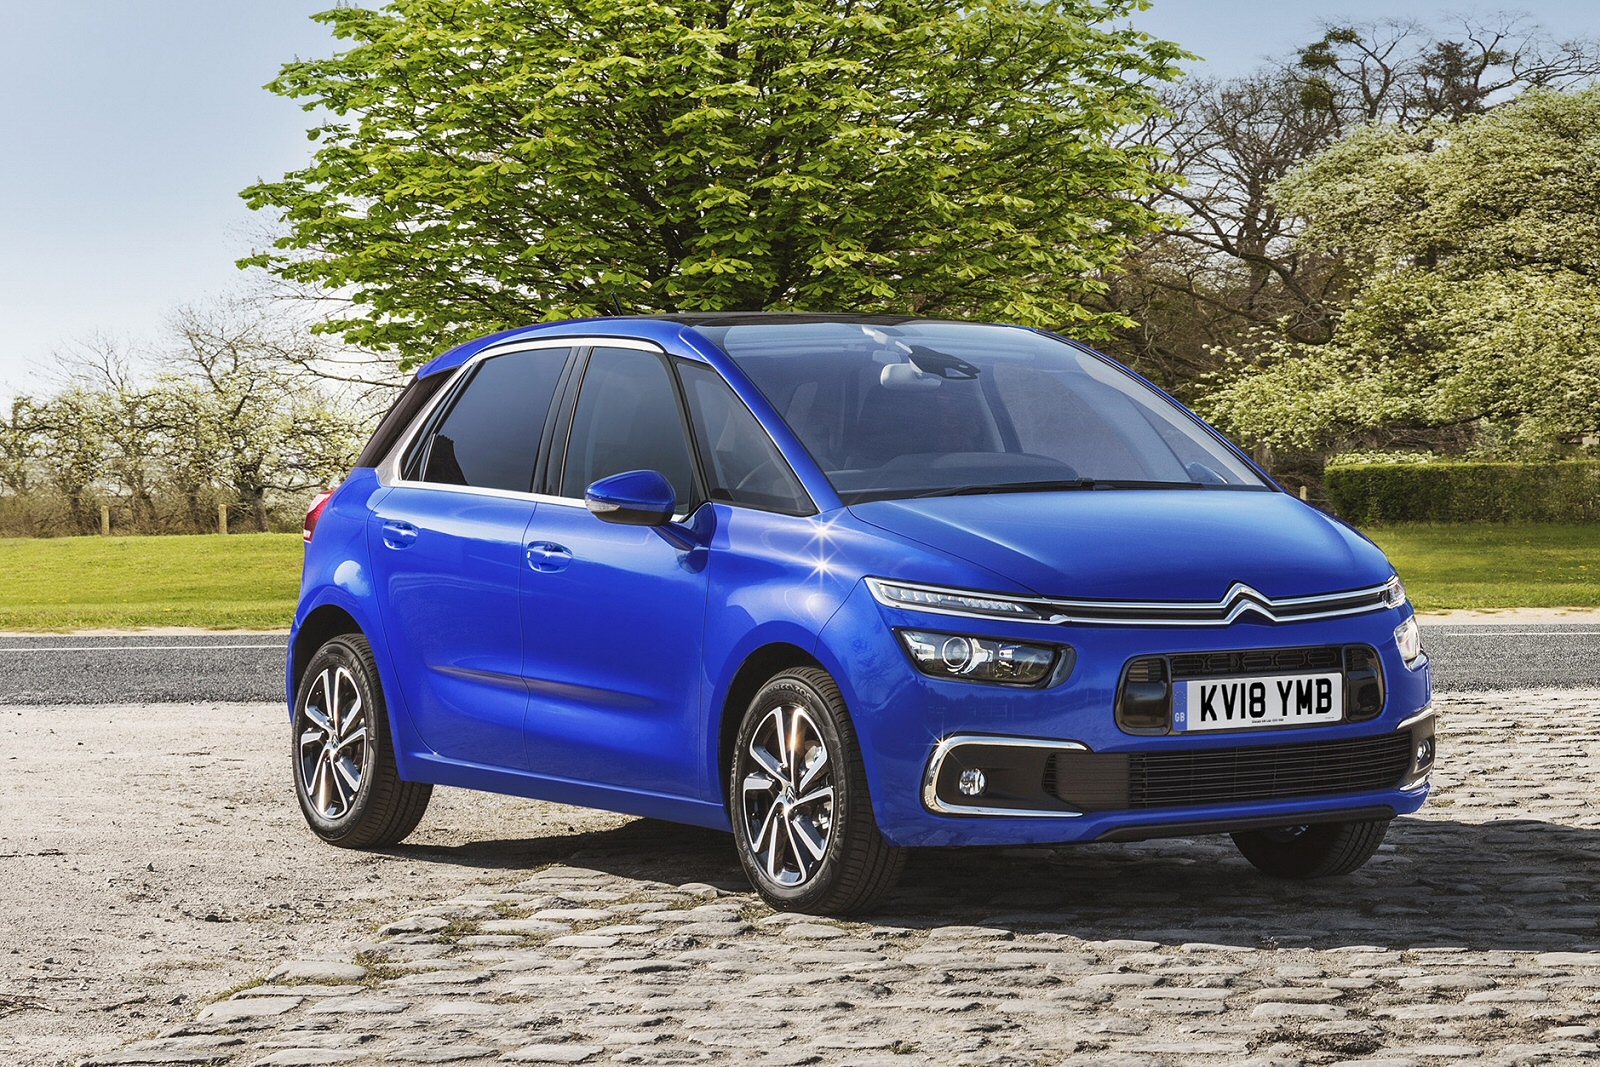 new citroen c4 space tourer 1 6 bluehdi 120 touch edition 5dr eat6 diesel estate motability. Black Bedroom Furniture Sets. Home Design Ideas